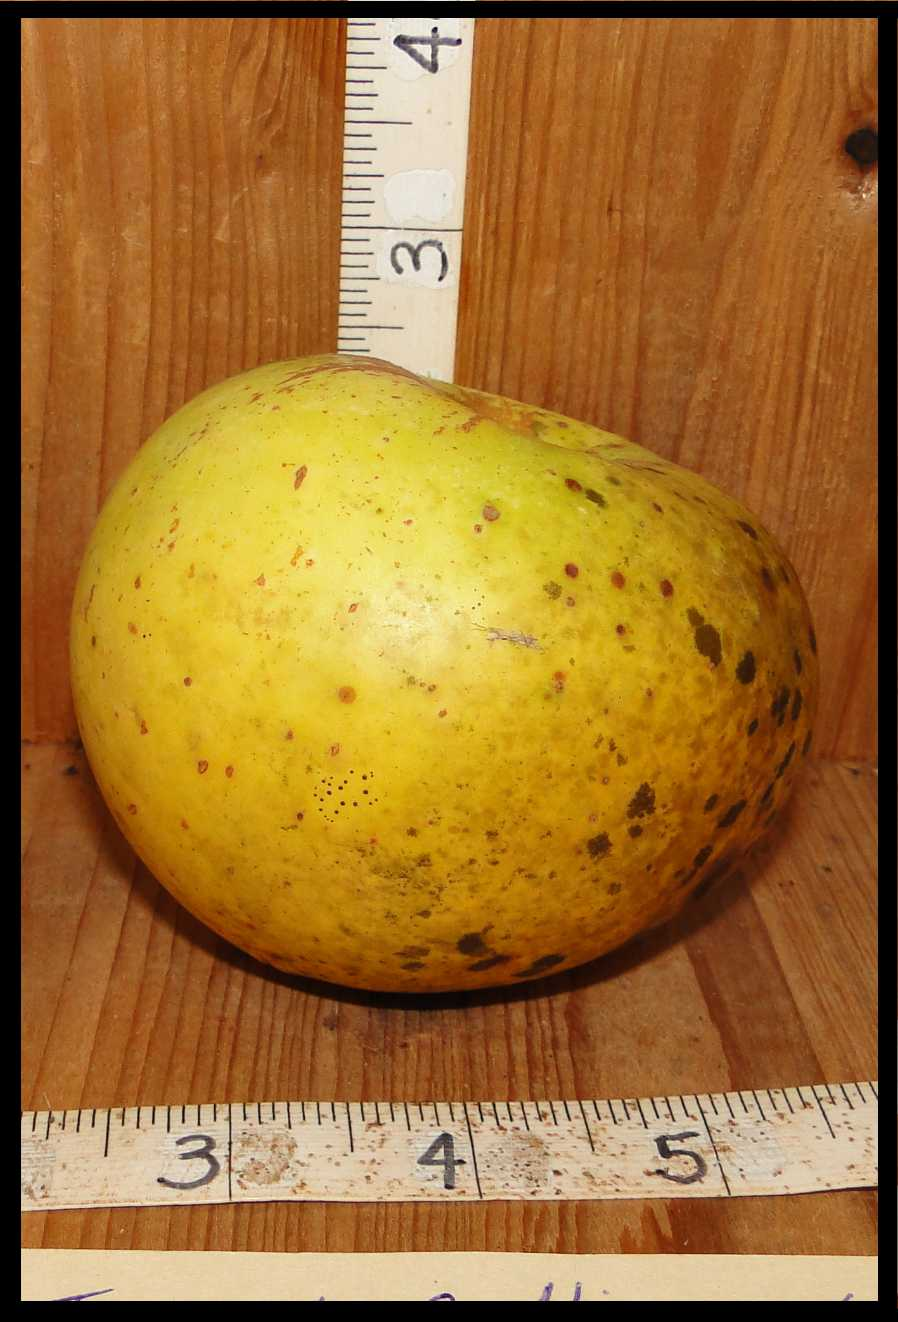 green apple with large brown spots